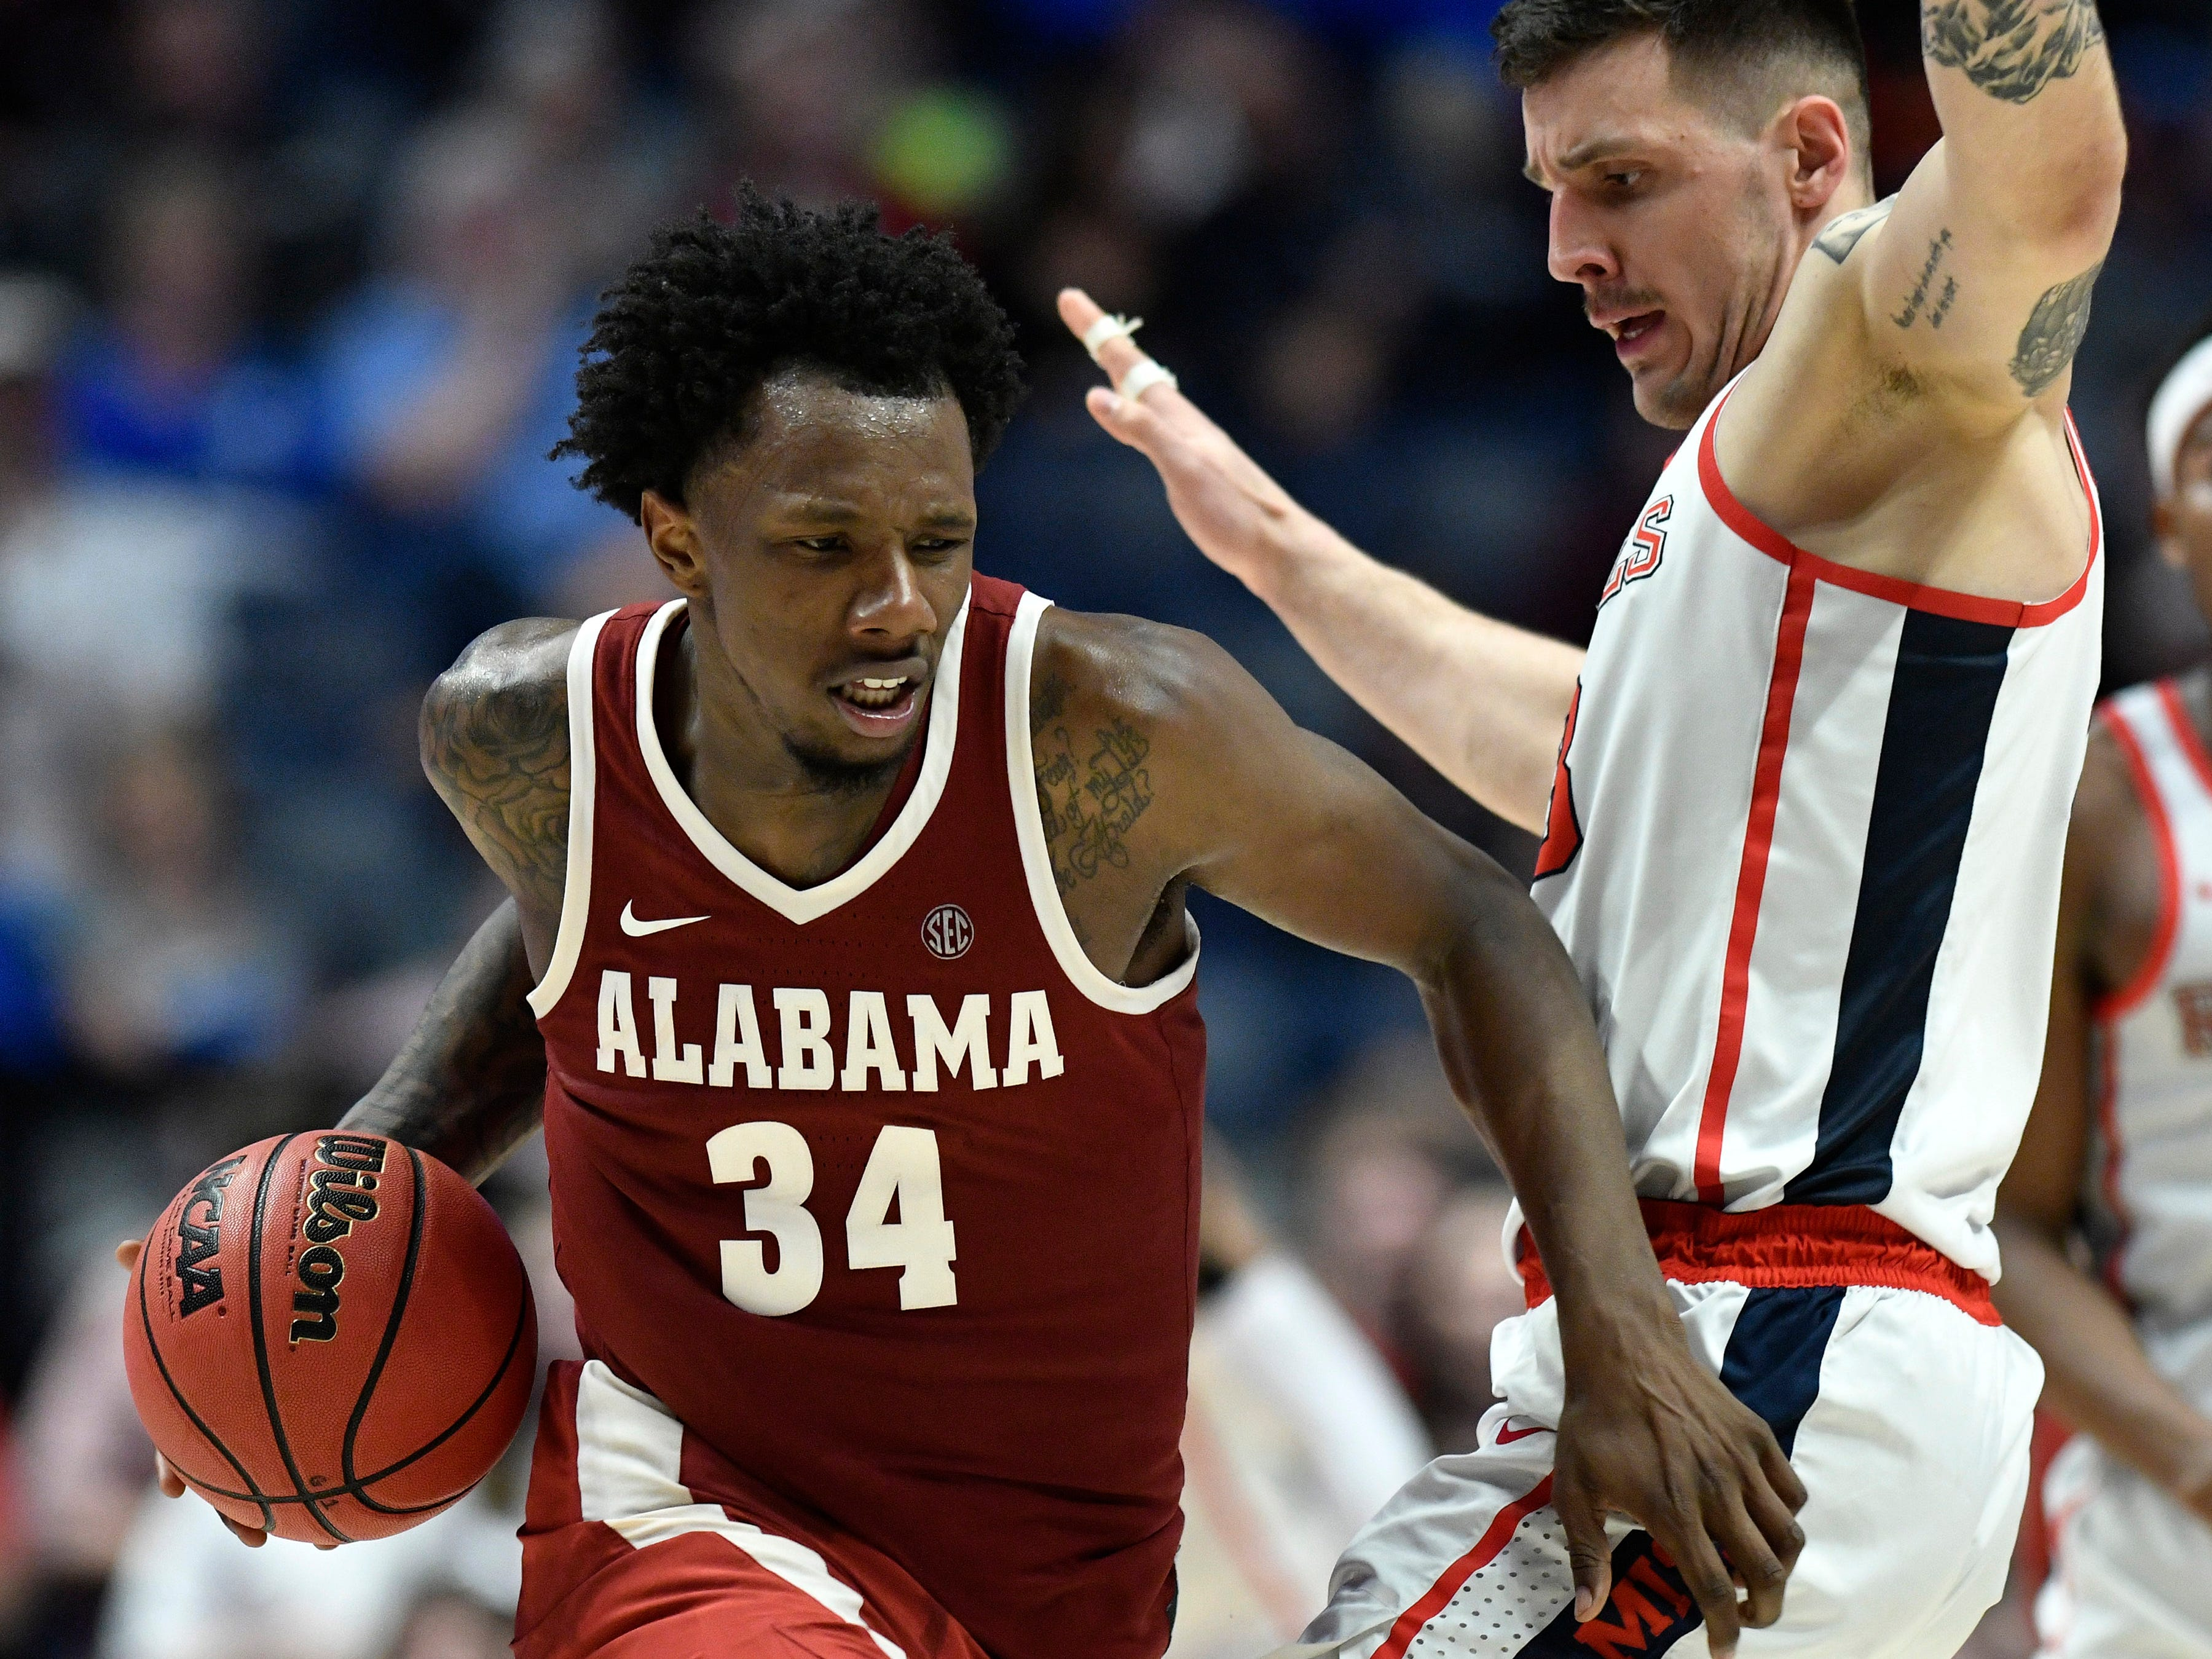 Alabama guard Tevin Mack (34) moves the ball defended by Ole Miss center Dominik Olejniczak (13) during the second half of the SEC Men's Basketball Tournament game at Bridgestone Arena in Nashville, Tenn., Thursday, March 14, 2019.